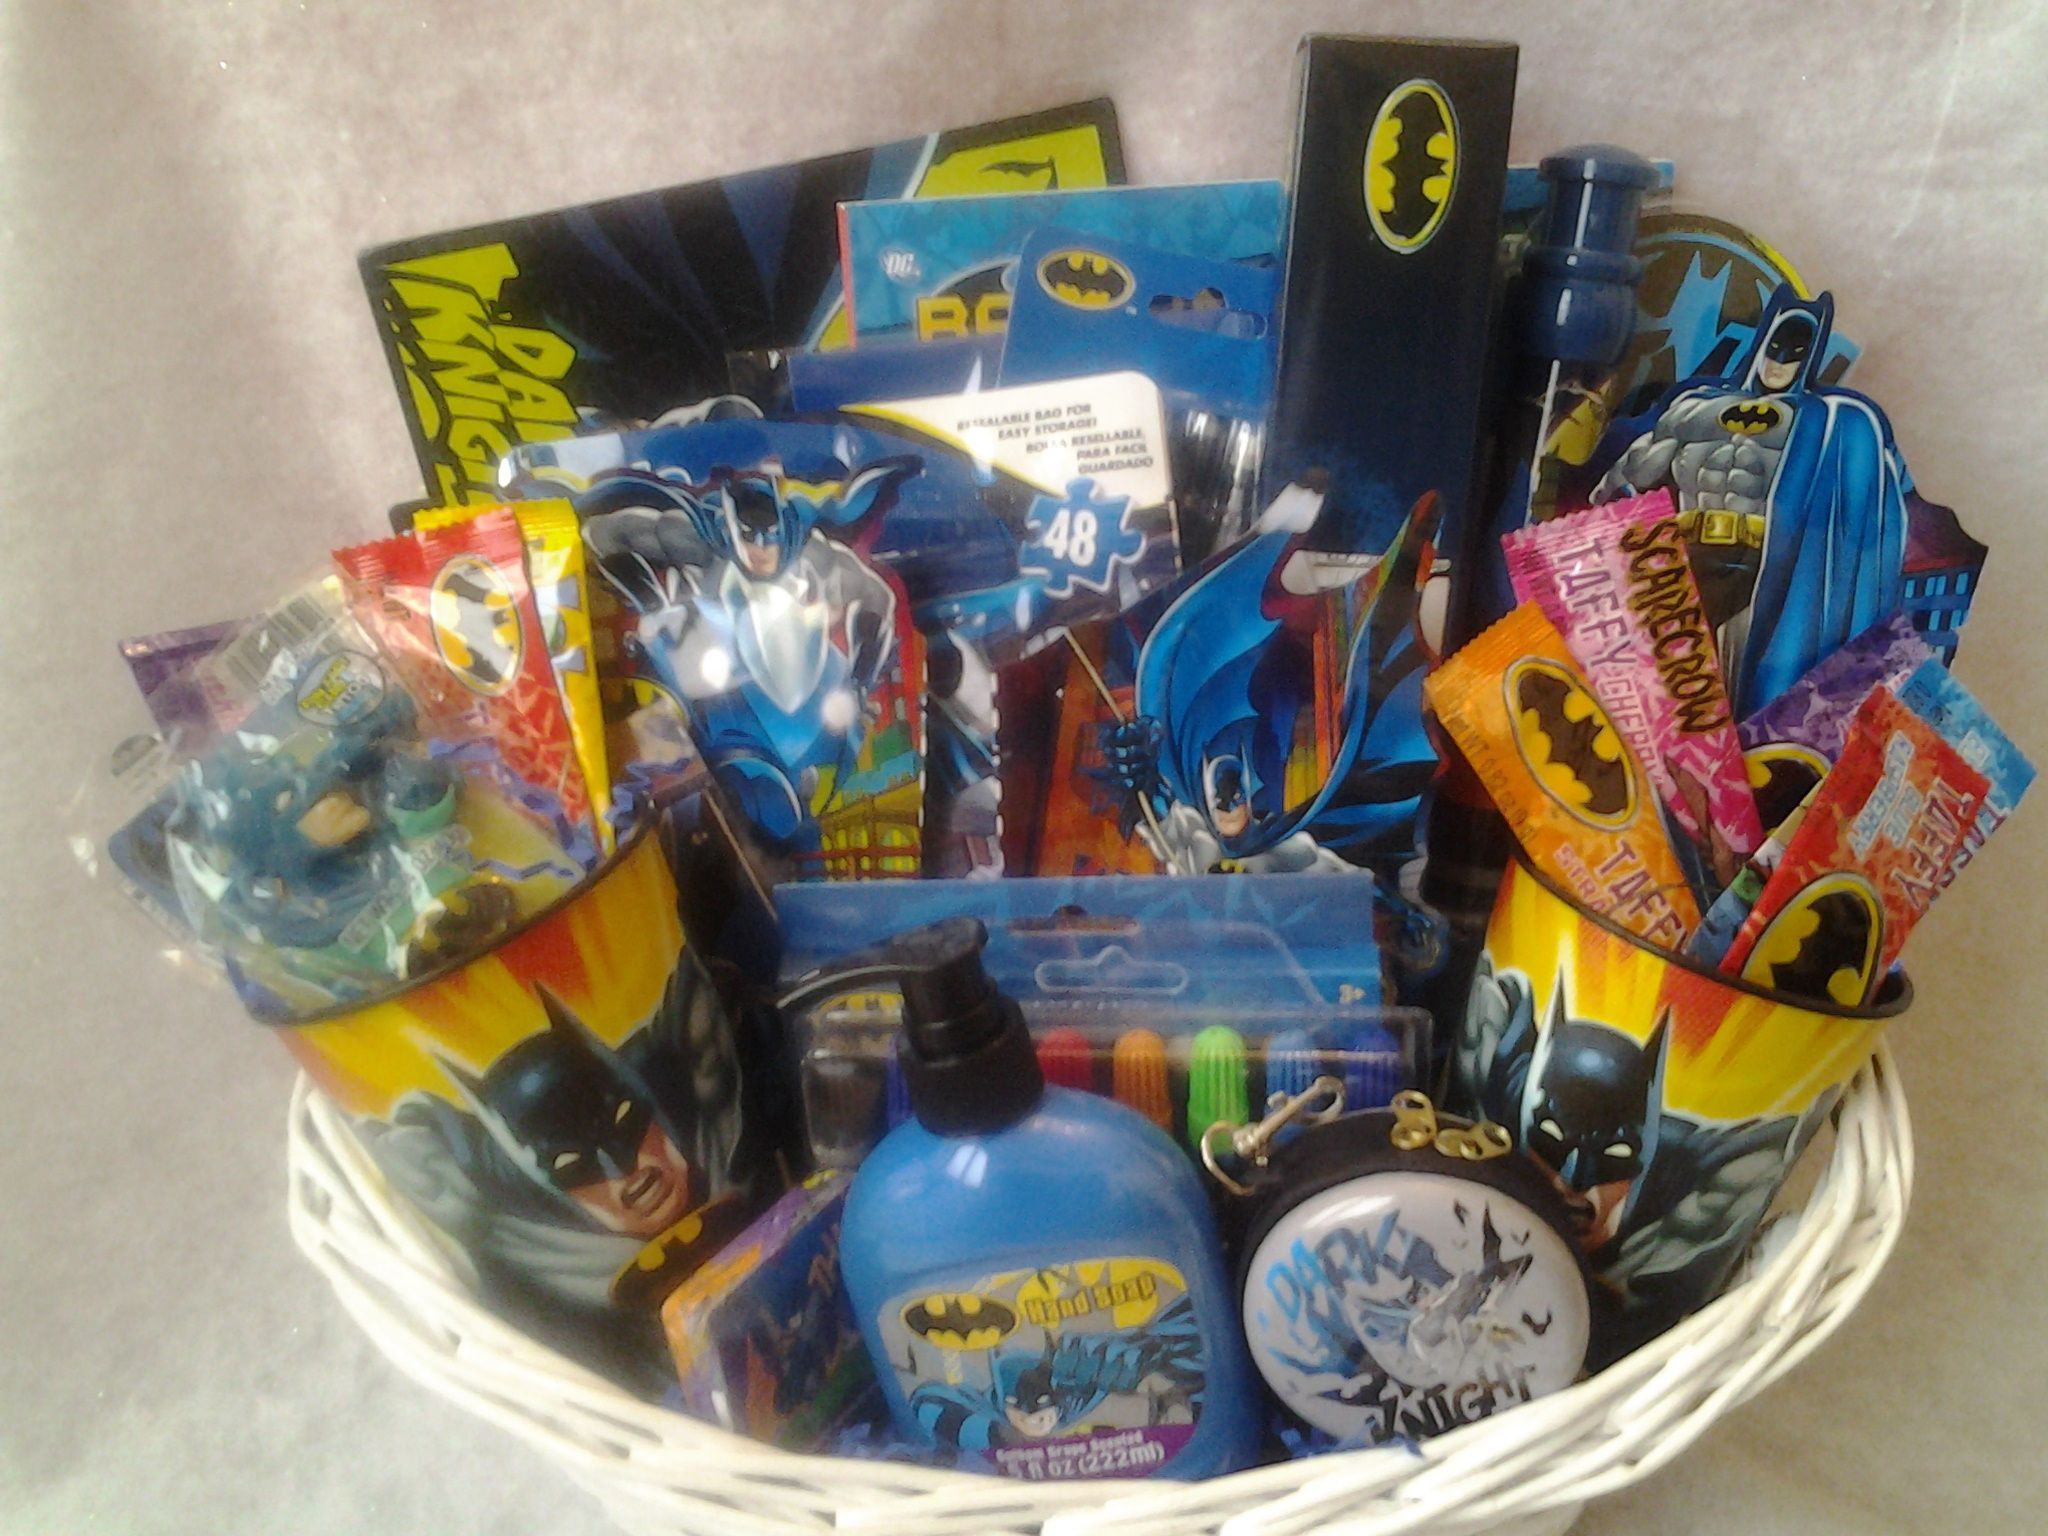 Best ideas about Superheroes Gift Ideas . Save or Pin Superhero t idea Gift Ideas Now.